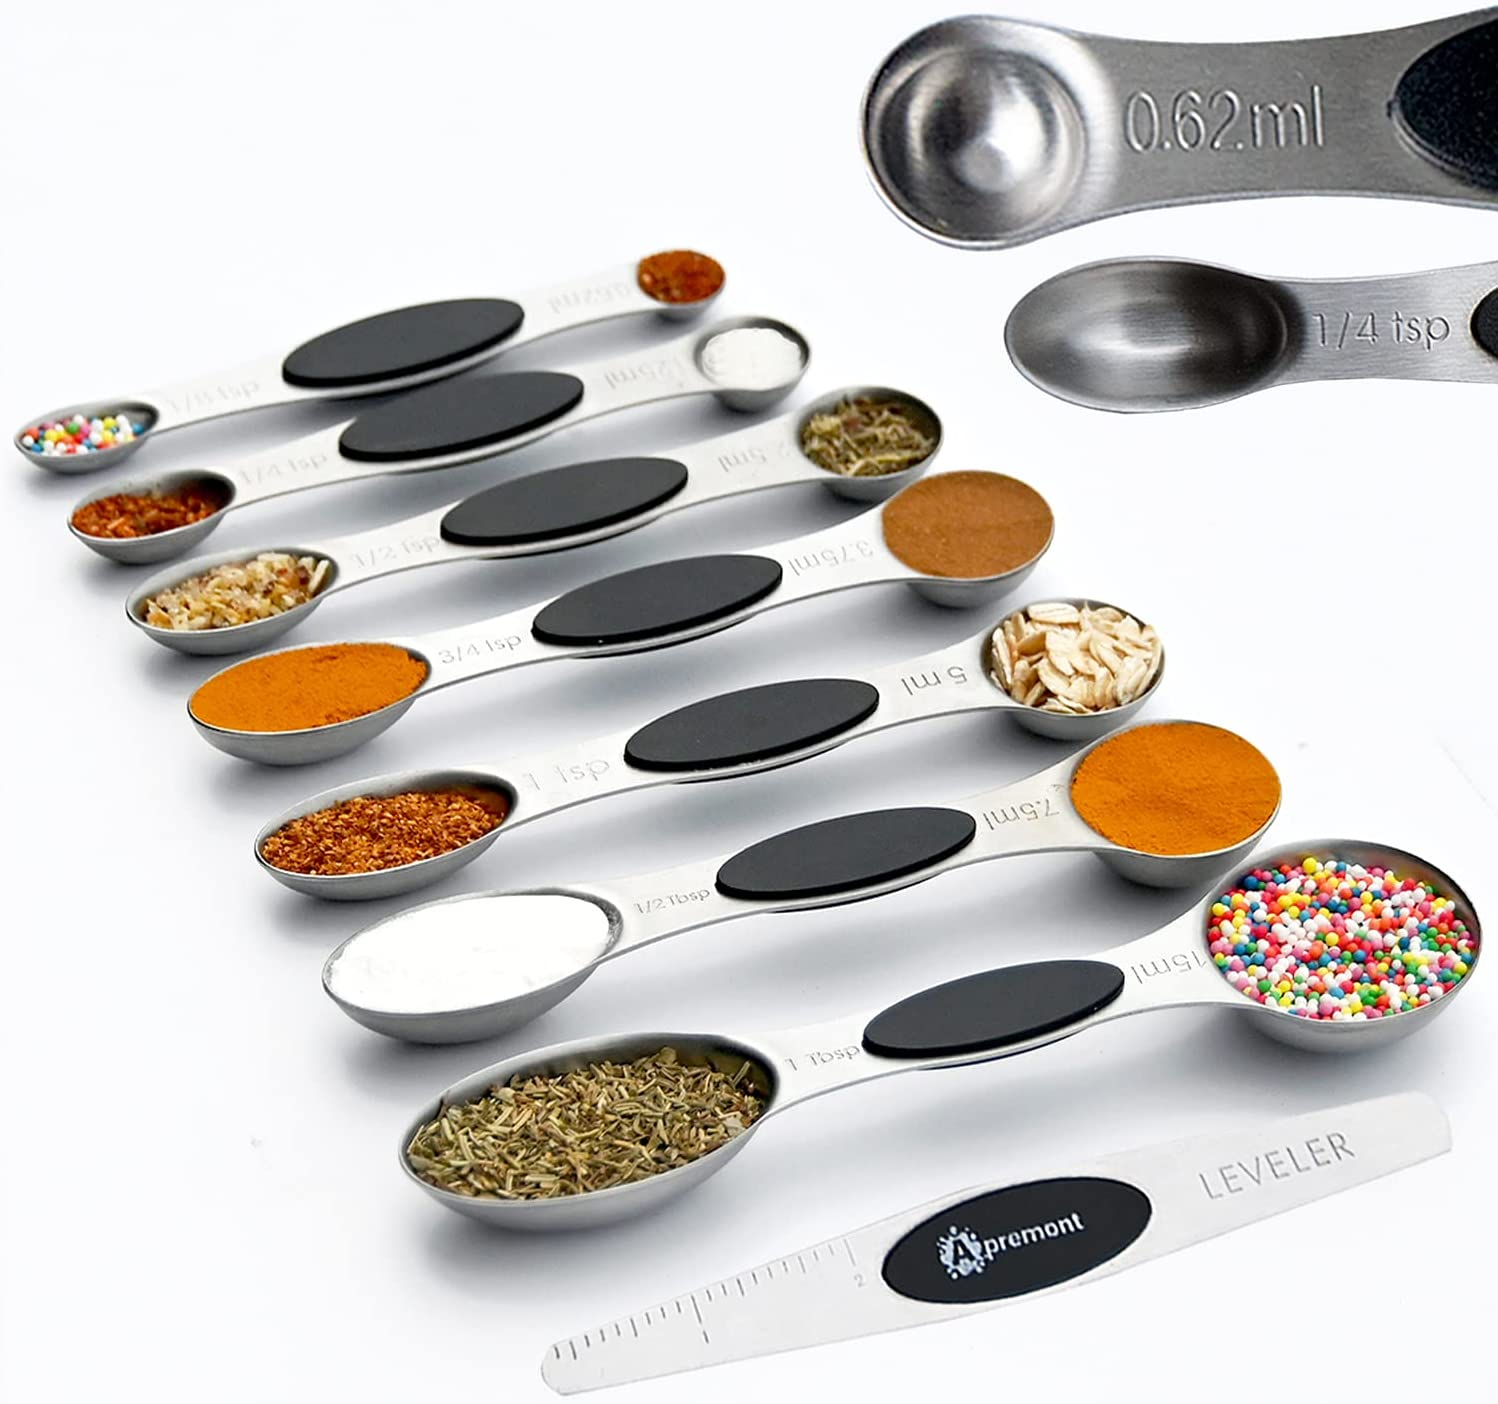 Heavy Duty Magnetic Engraved Stainless Steel Metal Measuring Spoons for Dry or Liquid, Fits in Spice Jar, Set of 8 with bonus Leveler - APREMONT: Kitchen & Dining